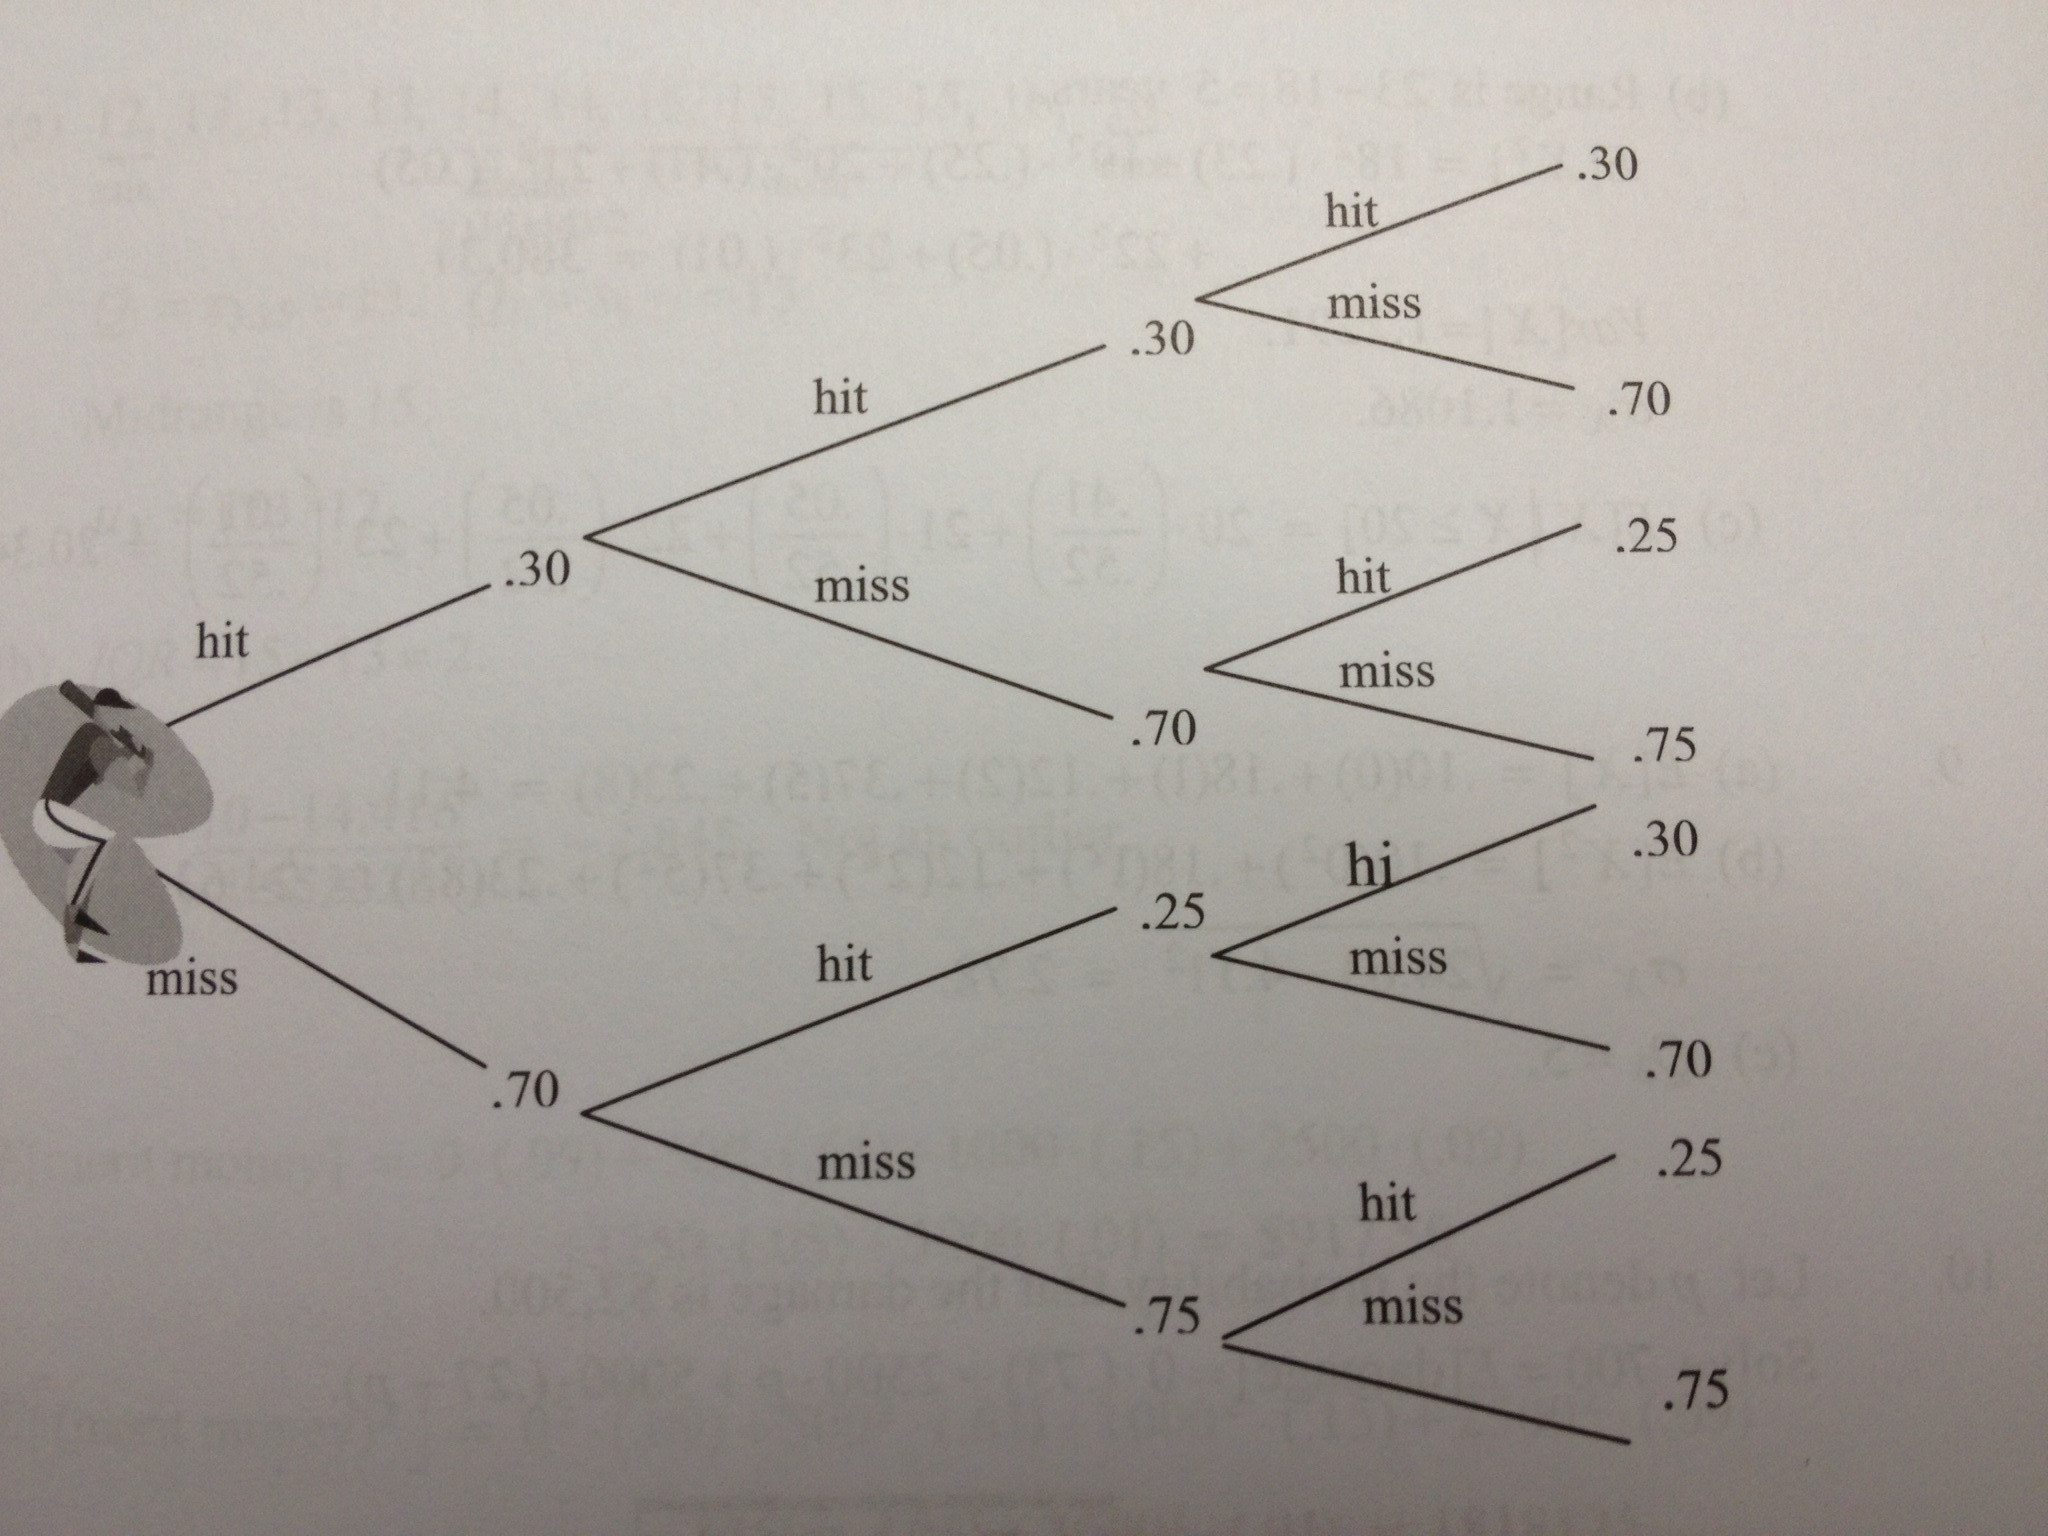 probability tree diagram example problems how does solar energy work conditional expected value problem